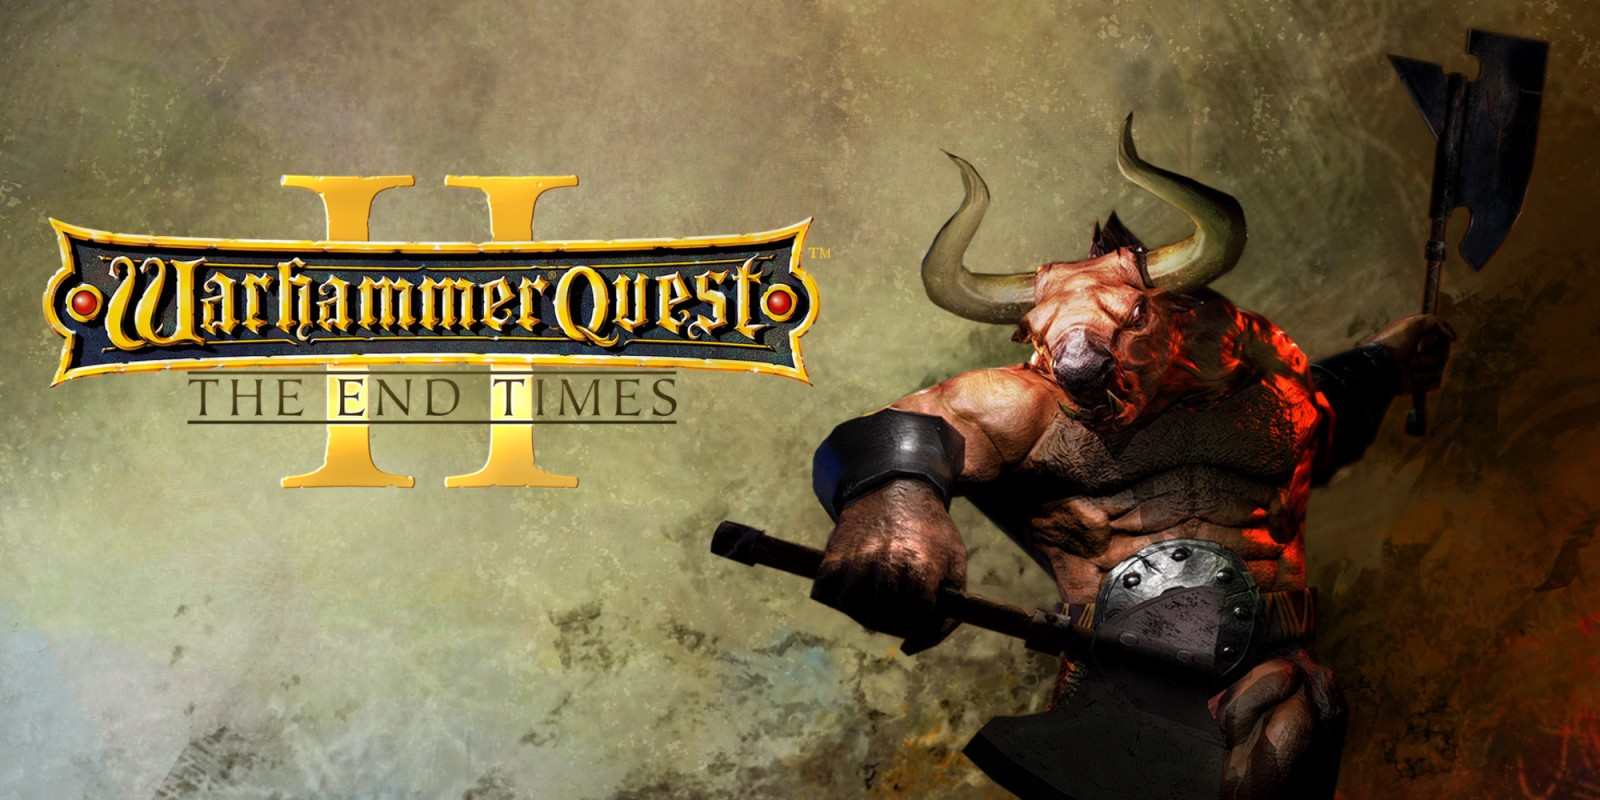 Warhammer Quest 2: The End Times Nintendo Switch Review